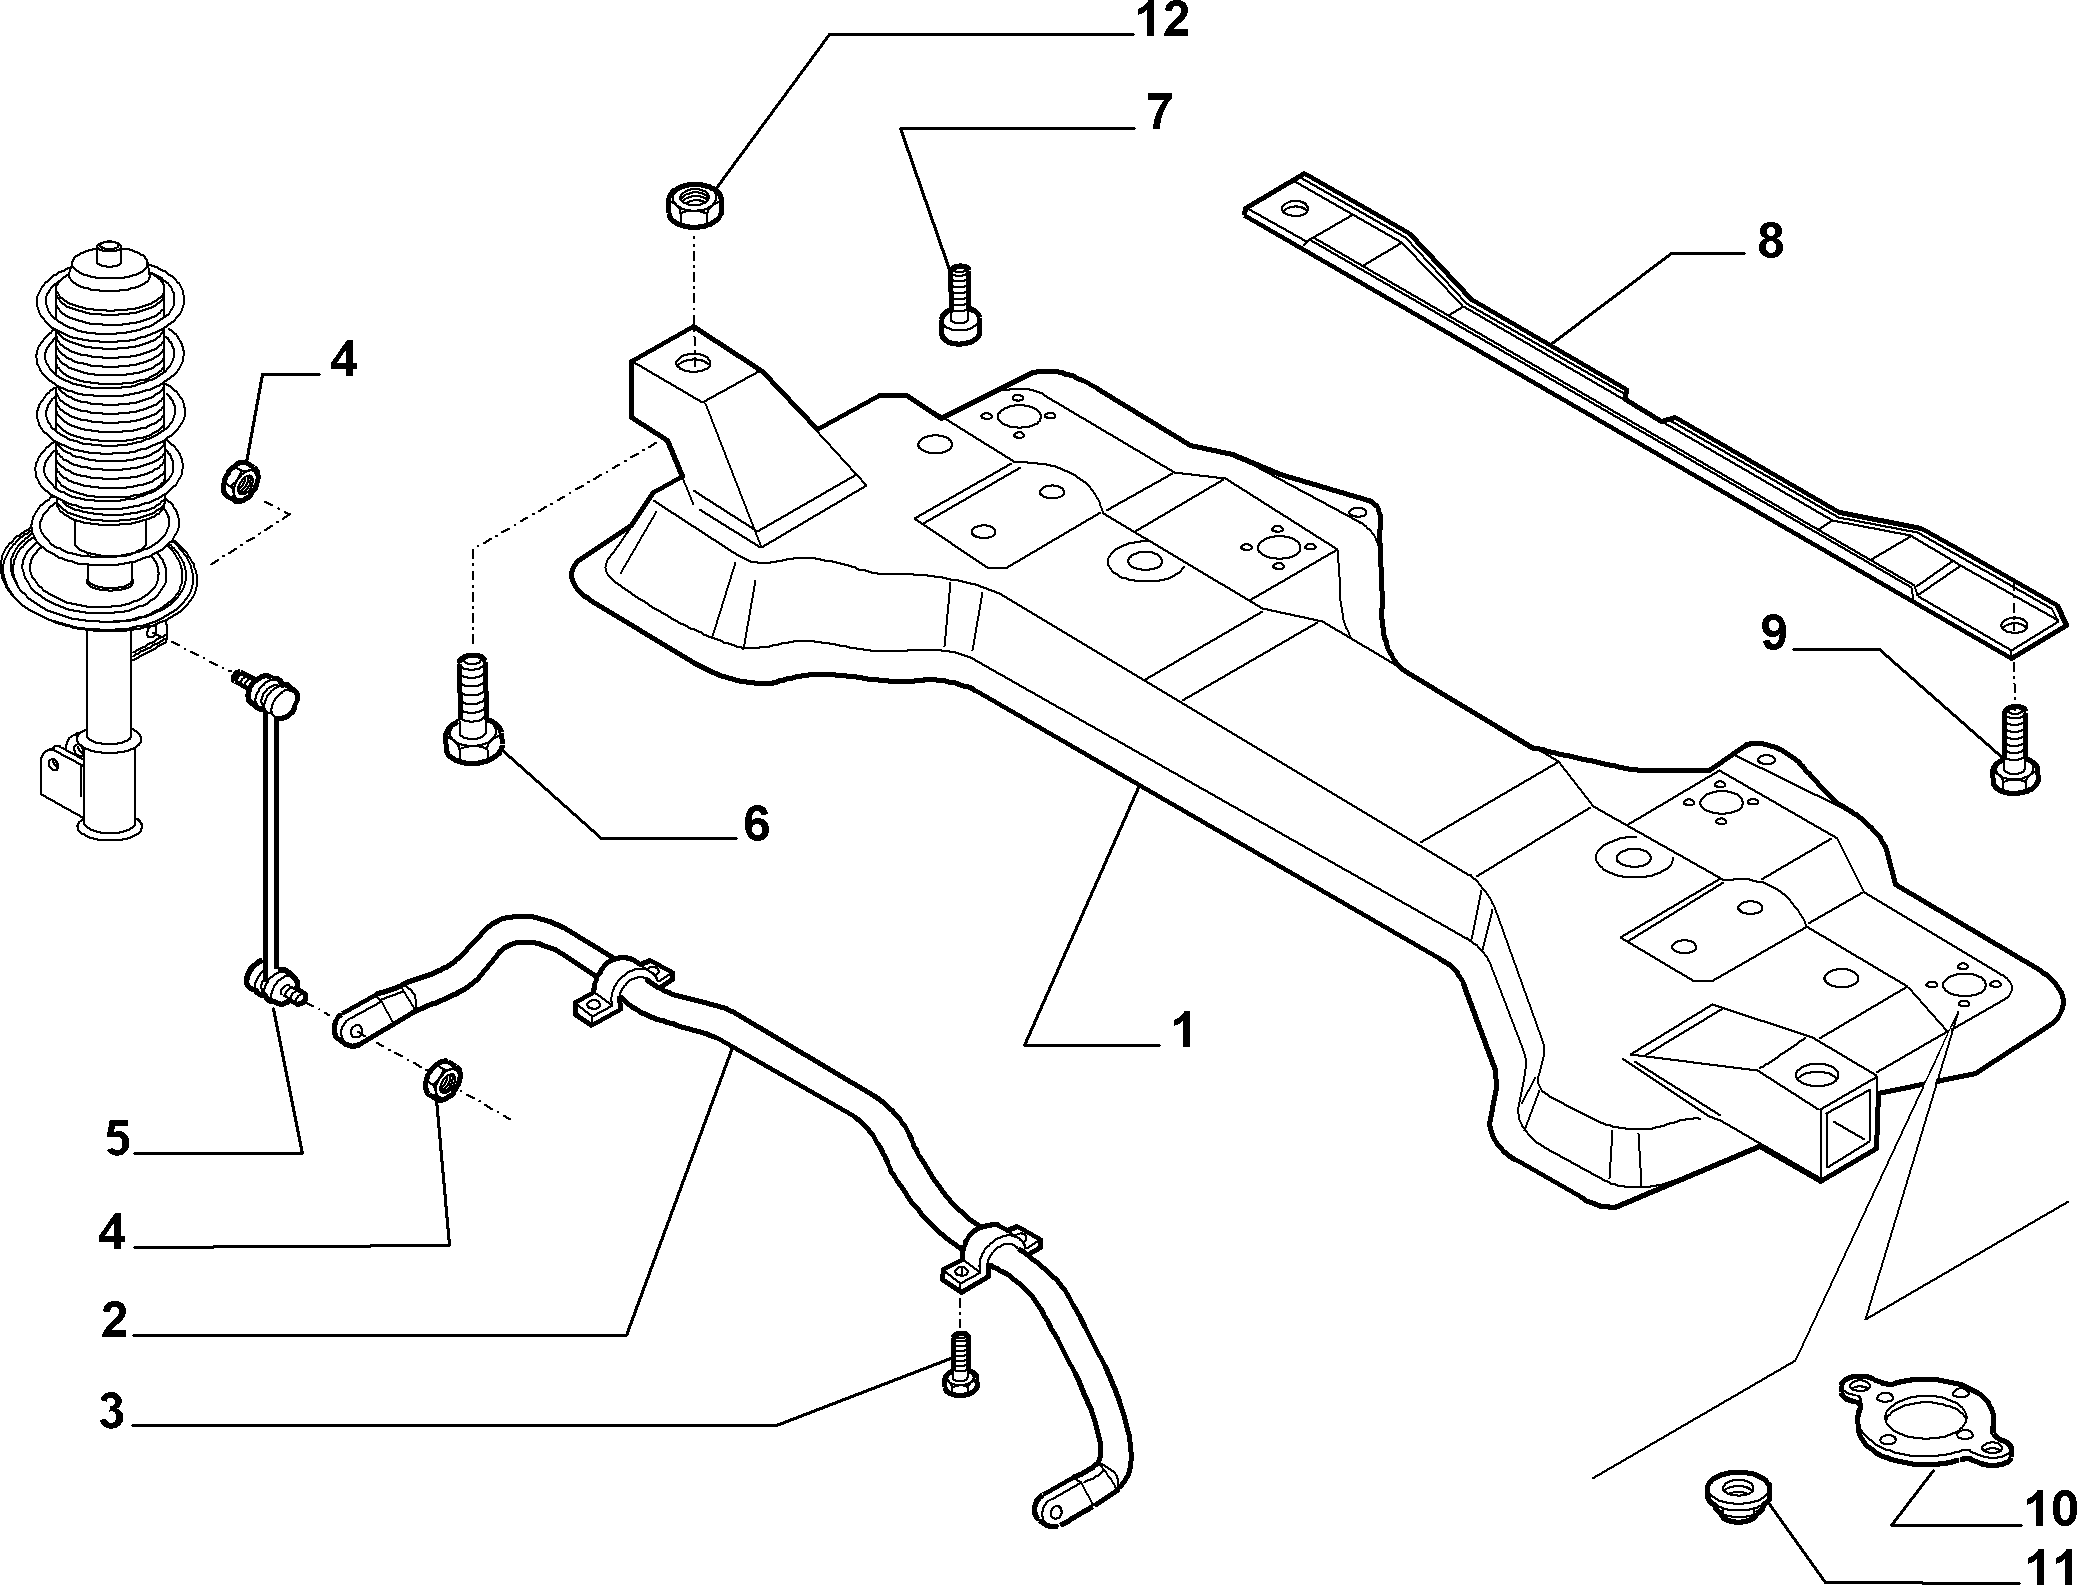 44301-030 CROSS ARM AND TORSION BAR